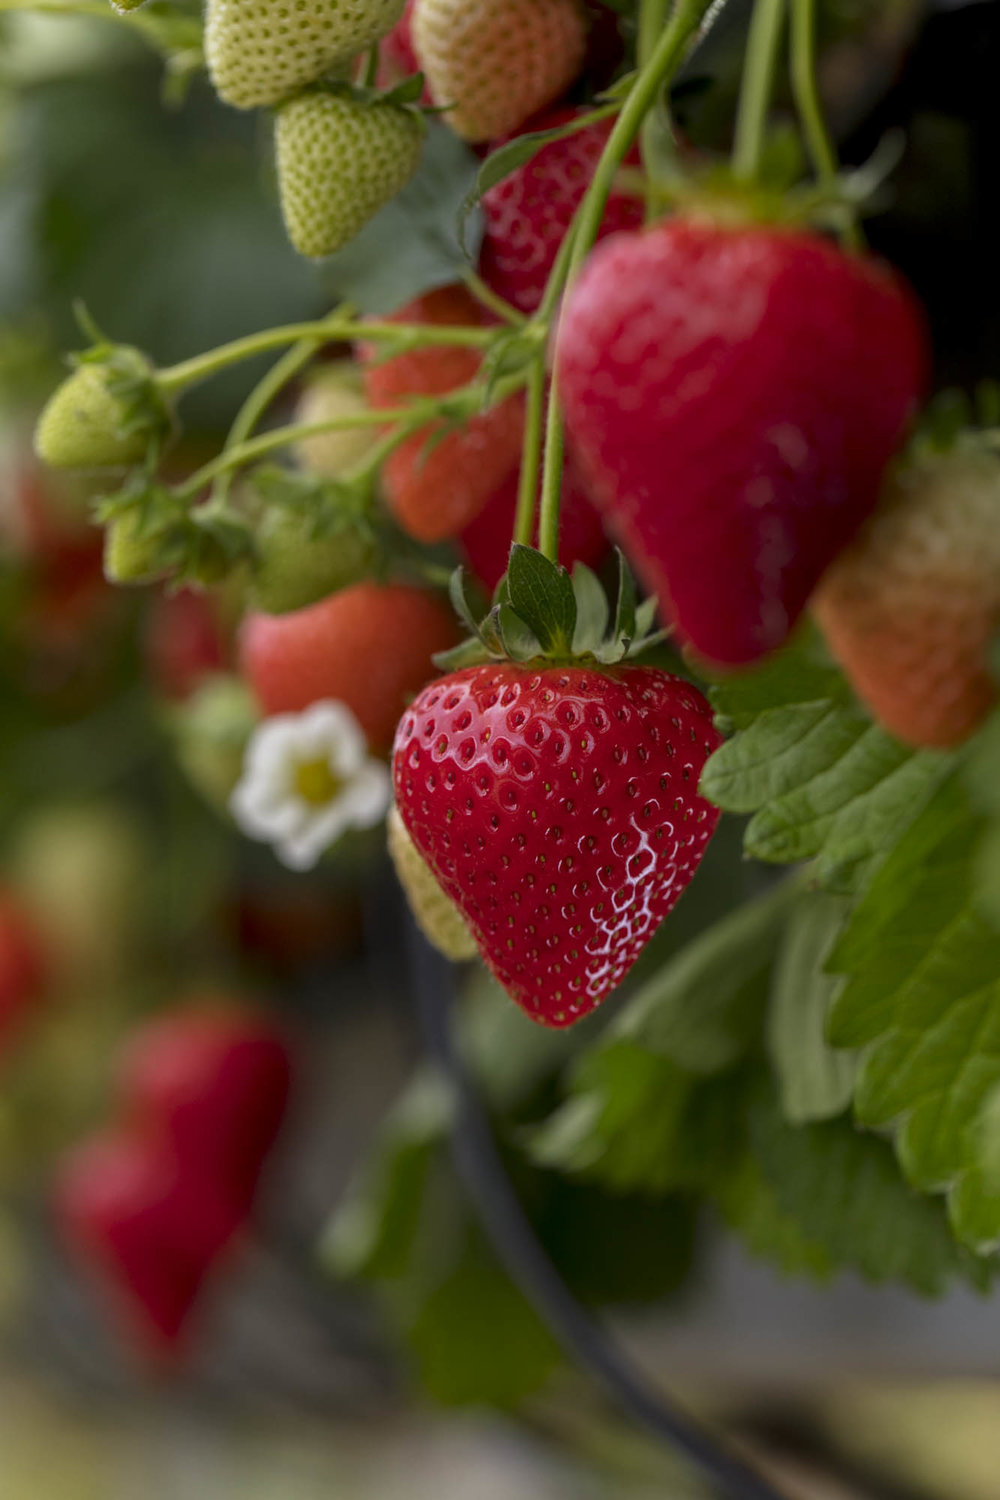 Strawberries_071_4581.jpg